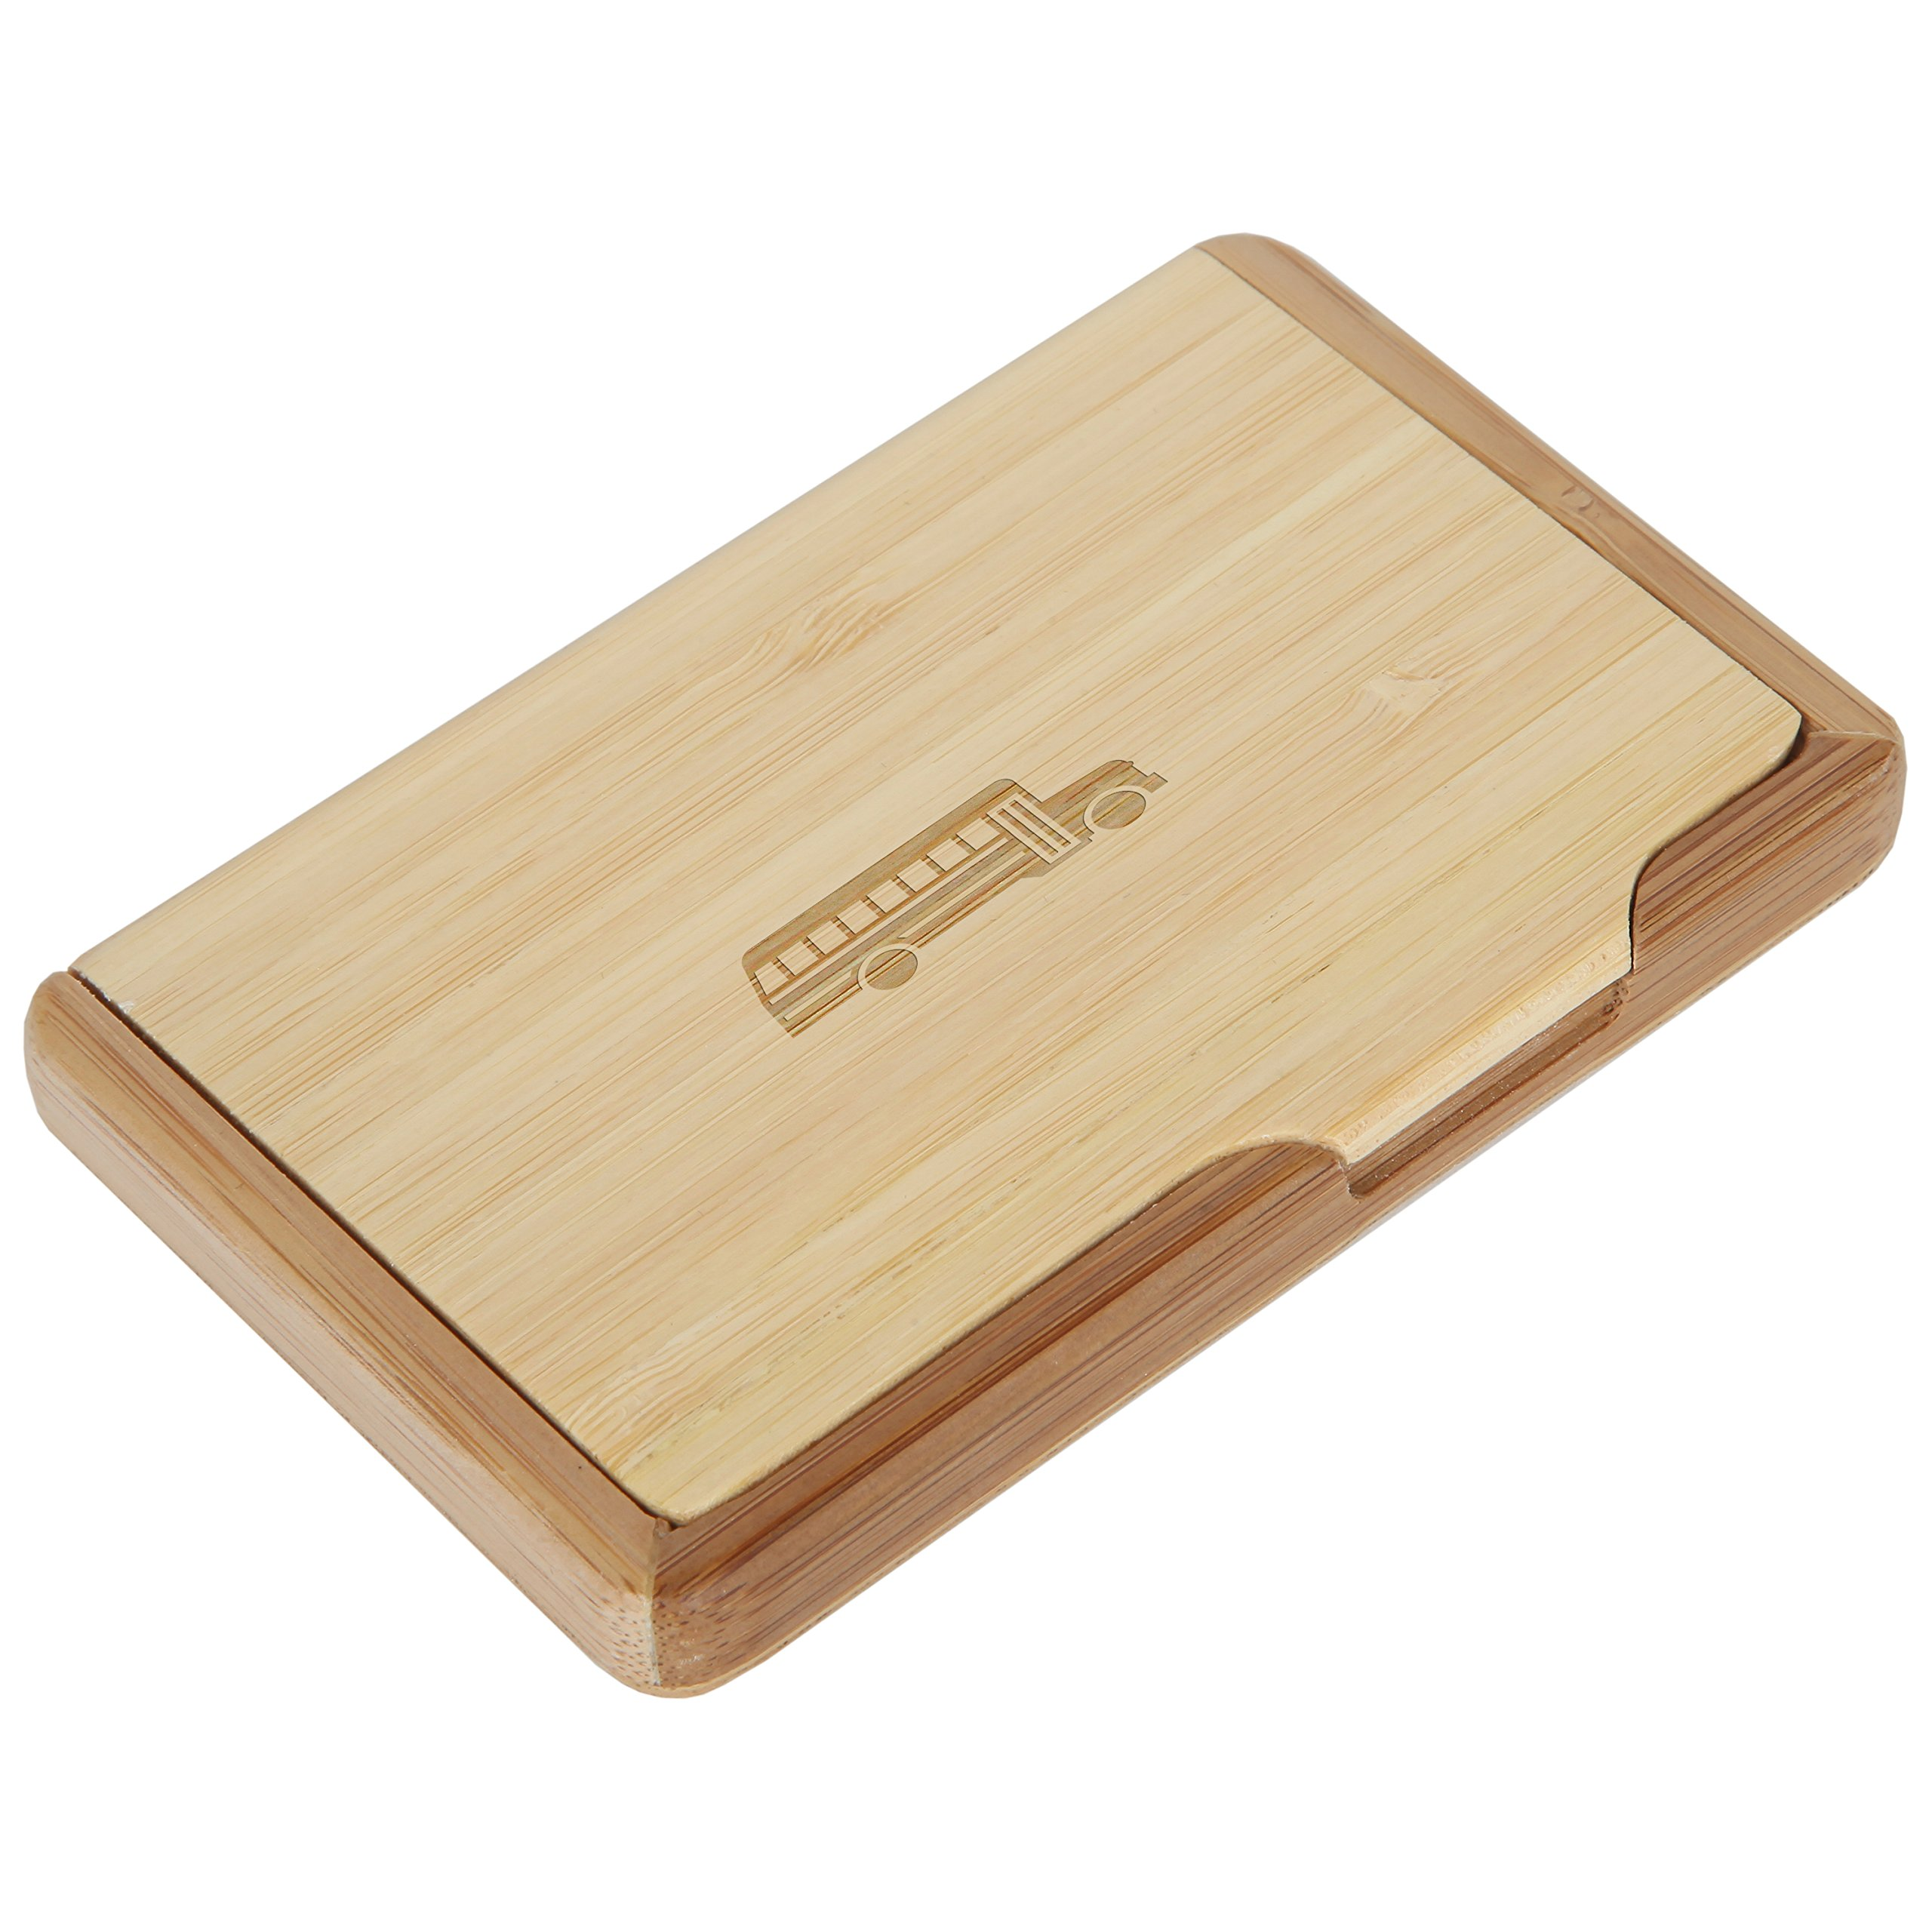 School Bus Bamboo Business Card Holder With Laser Engraved Design - Business Card Keeper - Holds Up To 10 Cards - Lightweight Calling Card Case